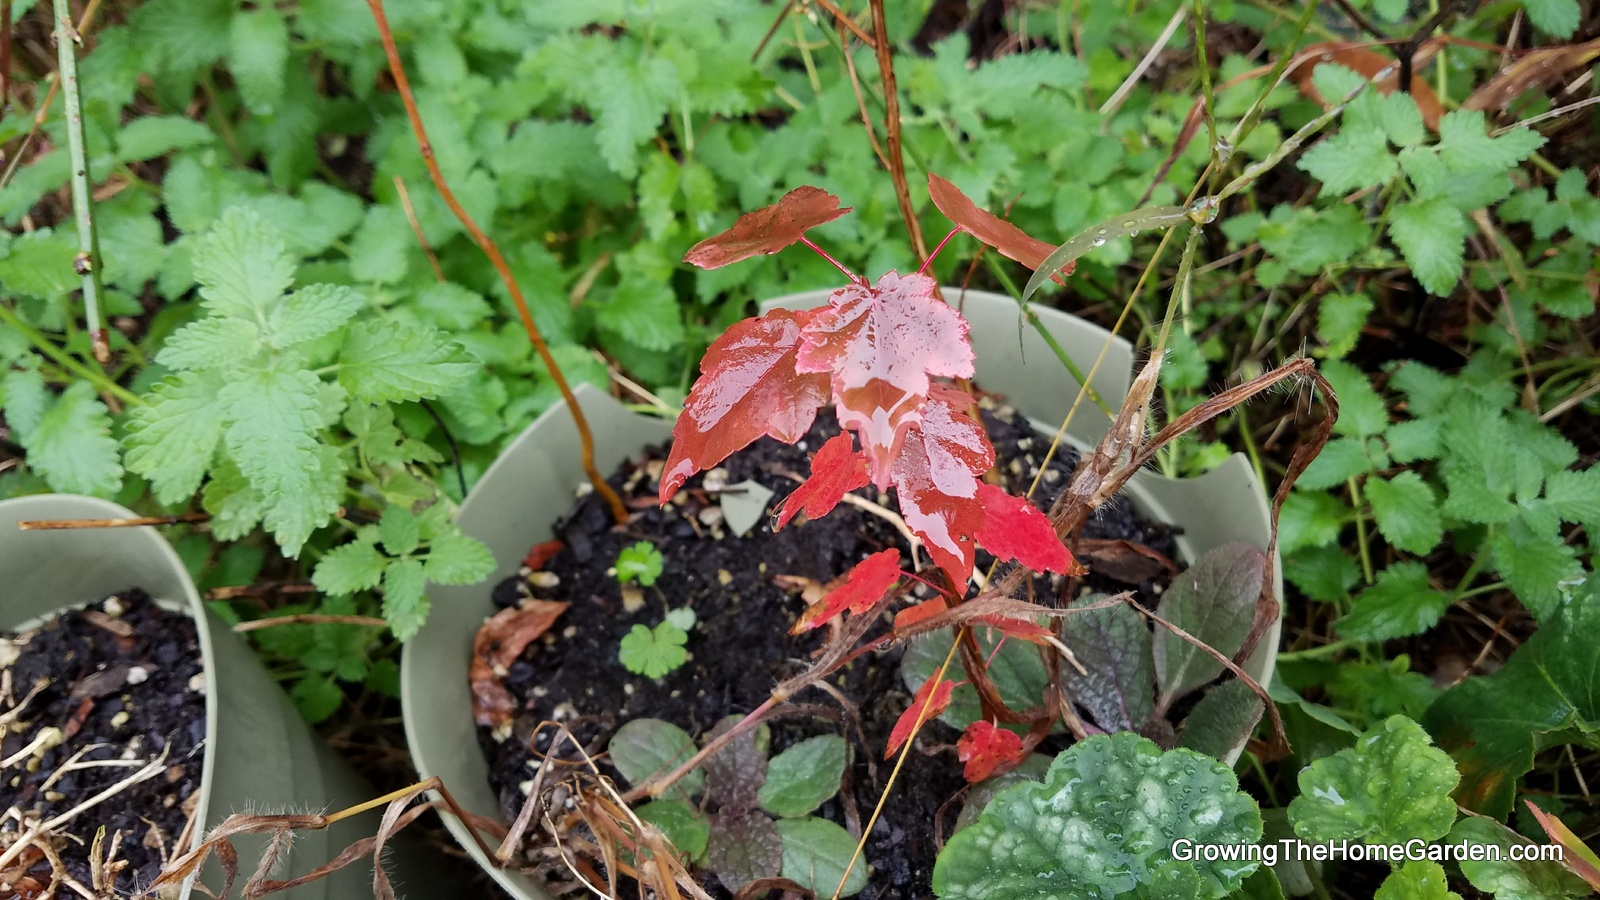 Fall Color 2017 from Growing The Home Garden - Growing The Home Garden